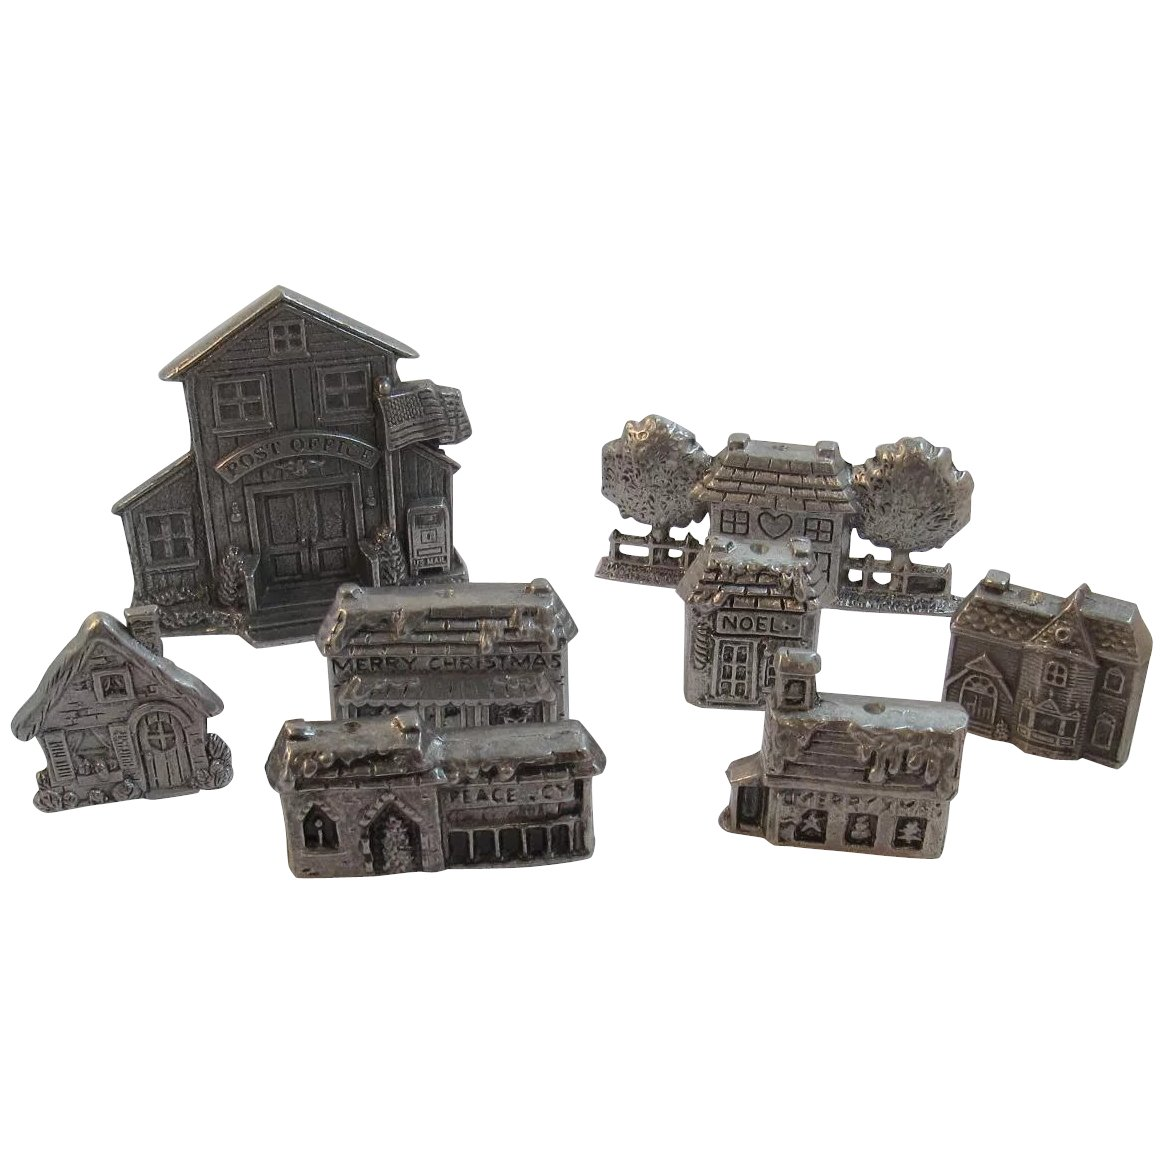 Christmas Village Houses.8 Carson Pewter Christmas Village Houses Buildings Post Office School General Store Train Station Vintage